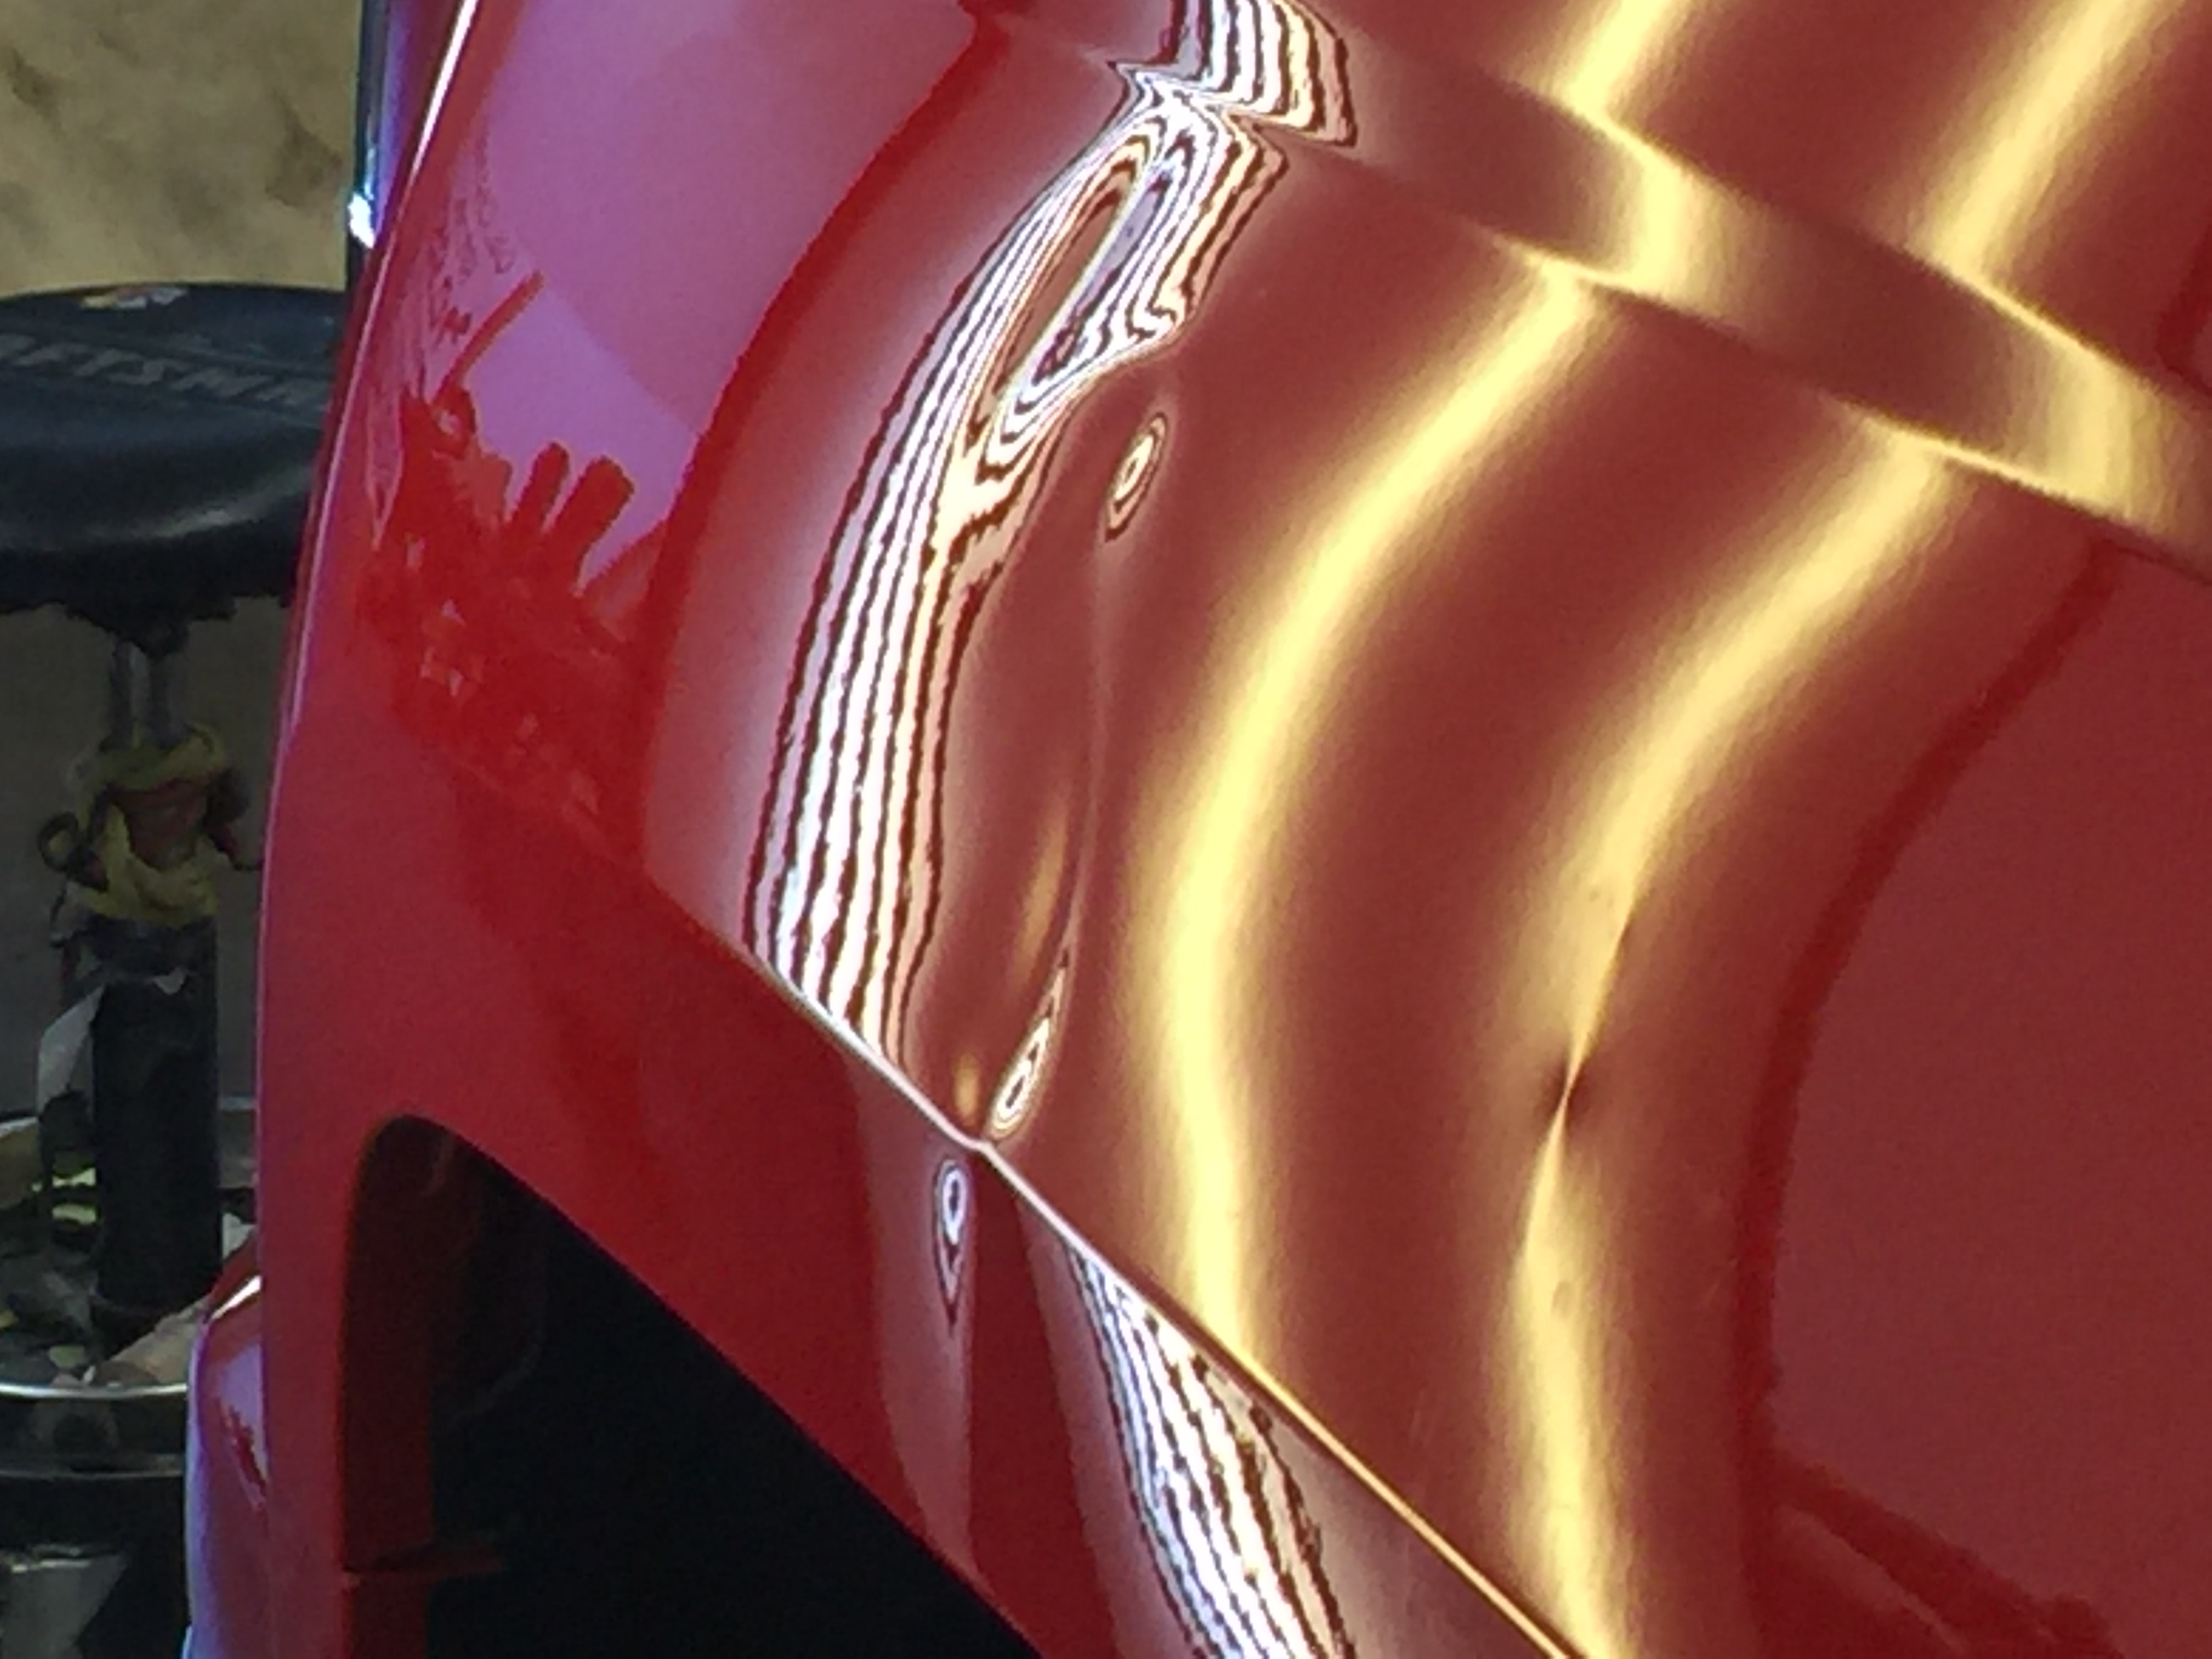 2014 Chevy Silverado Dent Removal, Sherman, IL. (near Springfield, IL). Dent in drivers' side fender, http://217dent.com